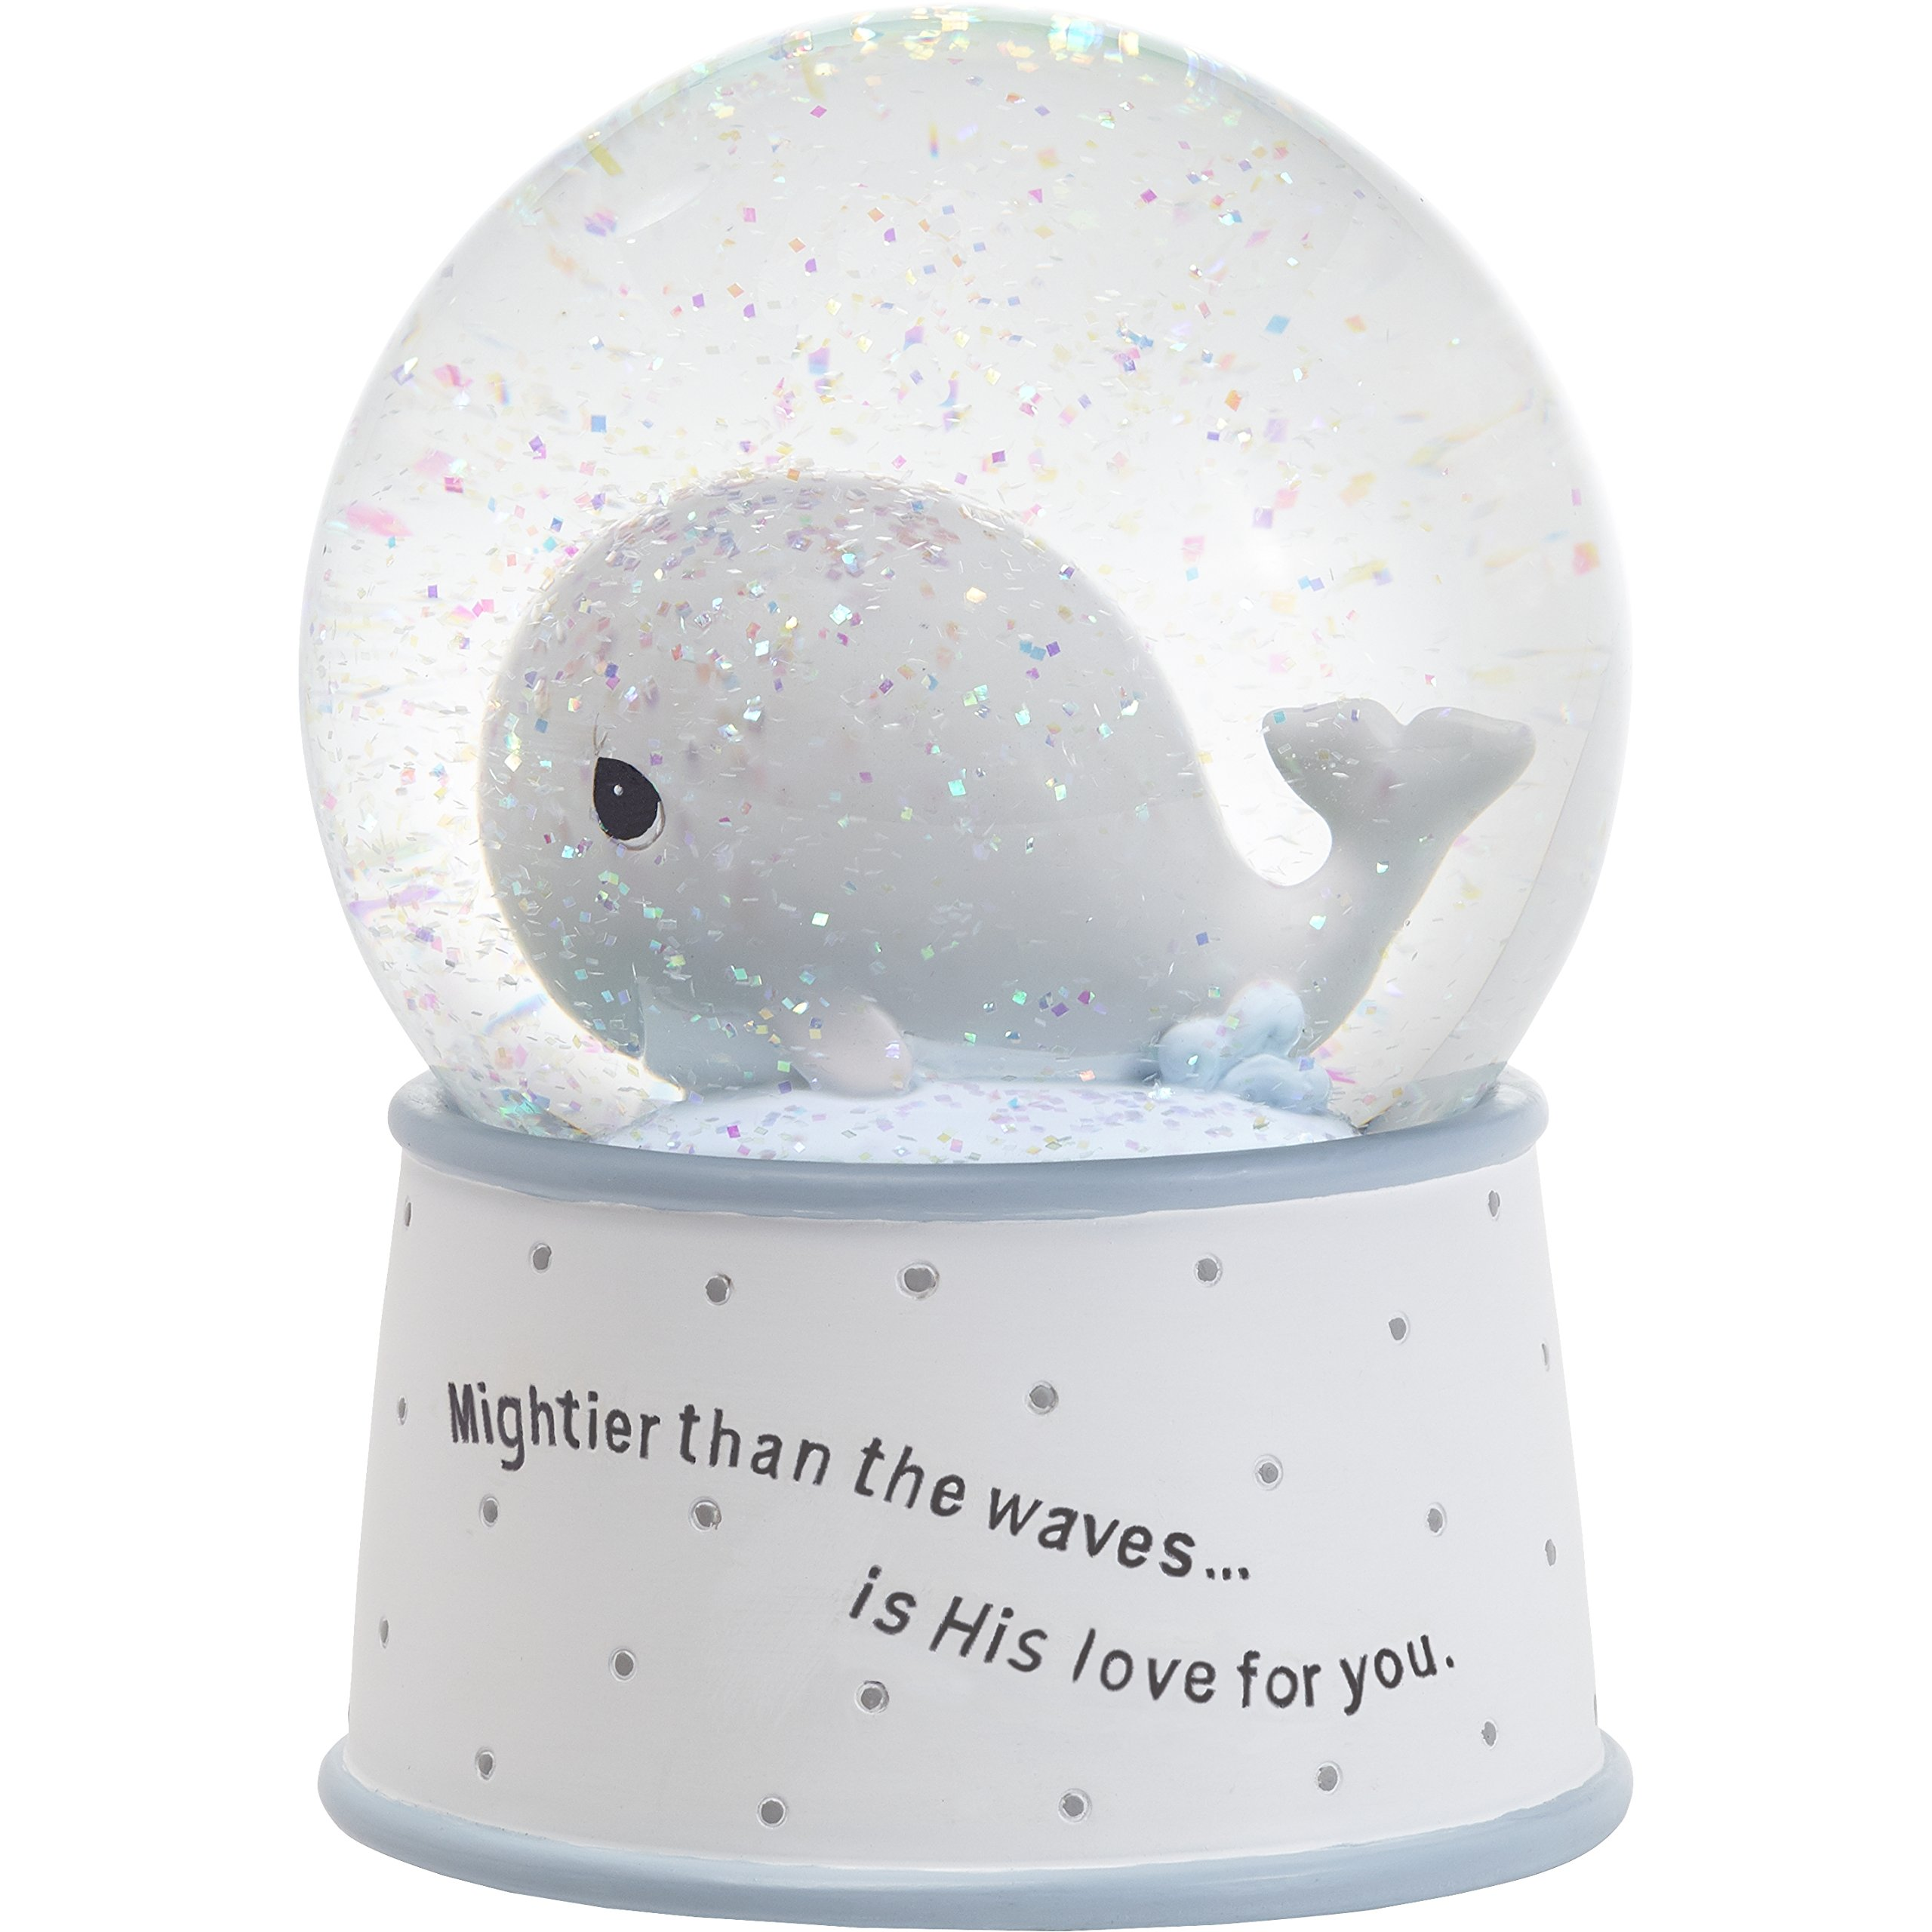 Precious Moments''''Mightier Than The Waves Brahms' Lullaby Whale Musical Resin/Glass Snow Globe, One Size, Multicolor